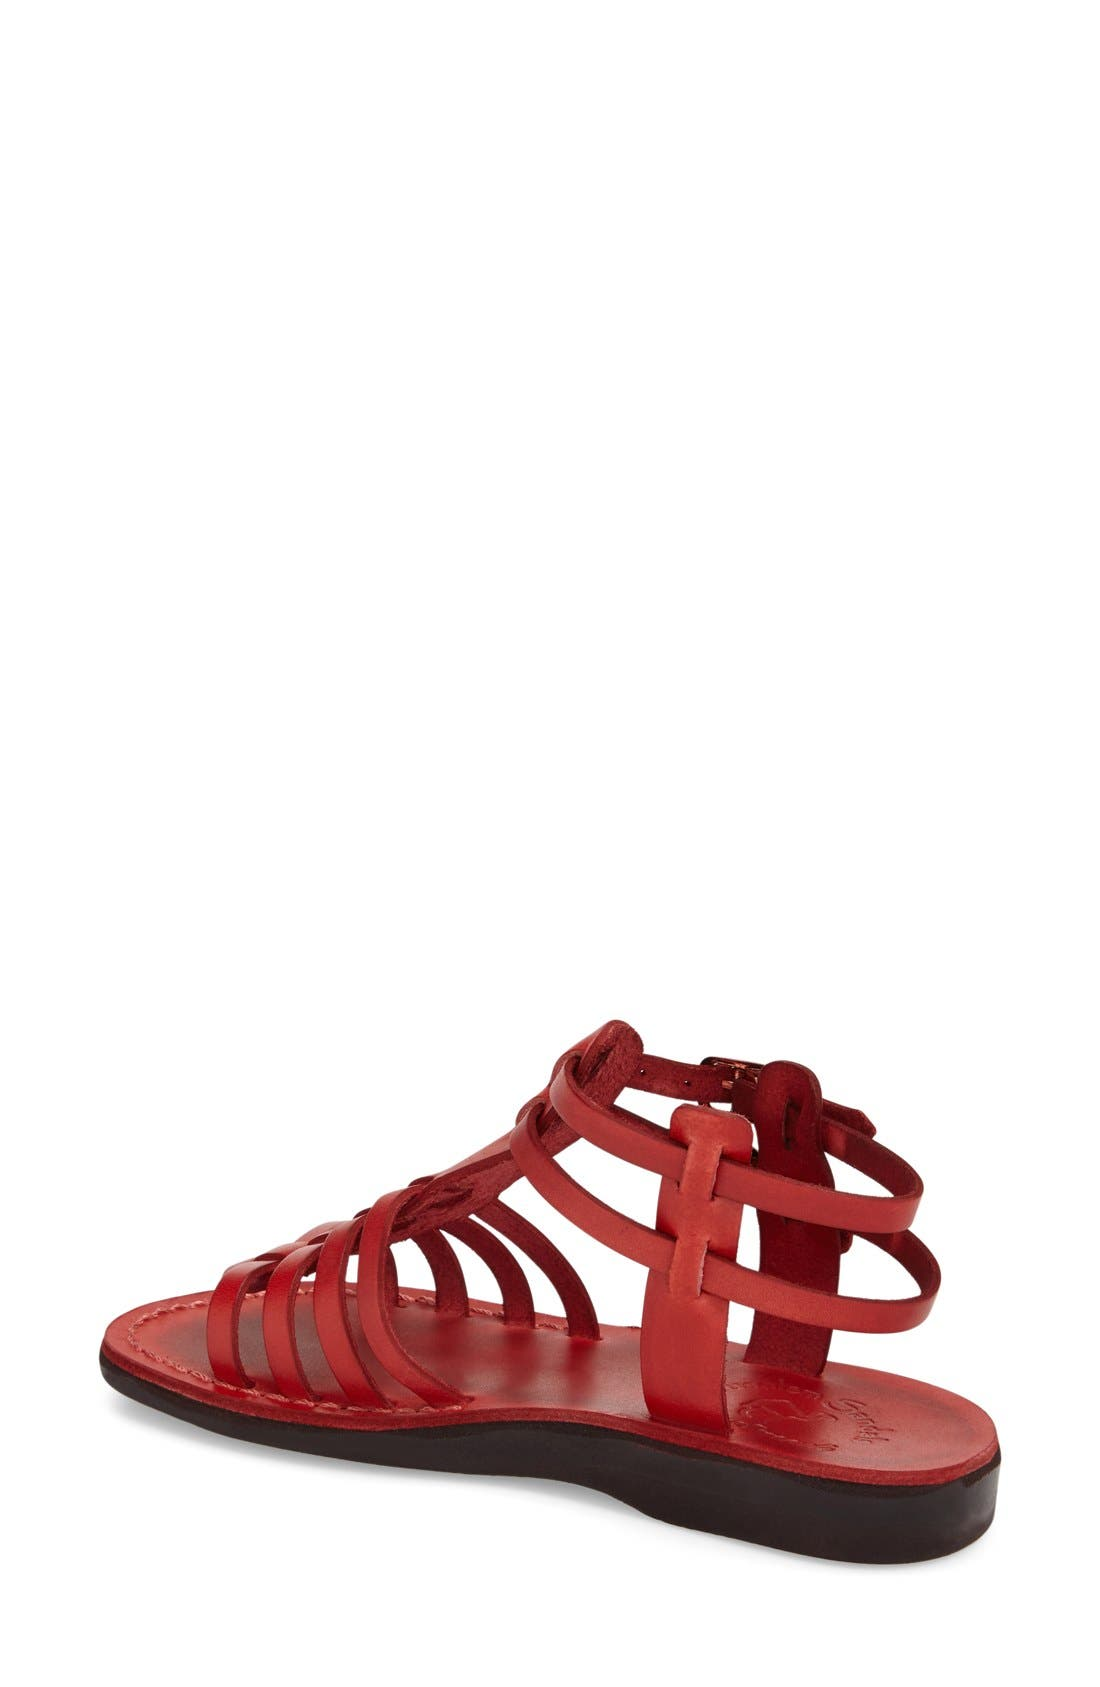 'Leah' Sandal,                             Alternate thumbnail 2, color,                             Red Leather